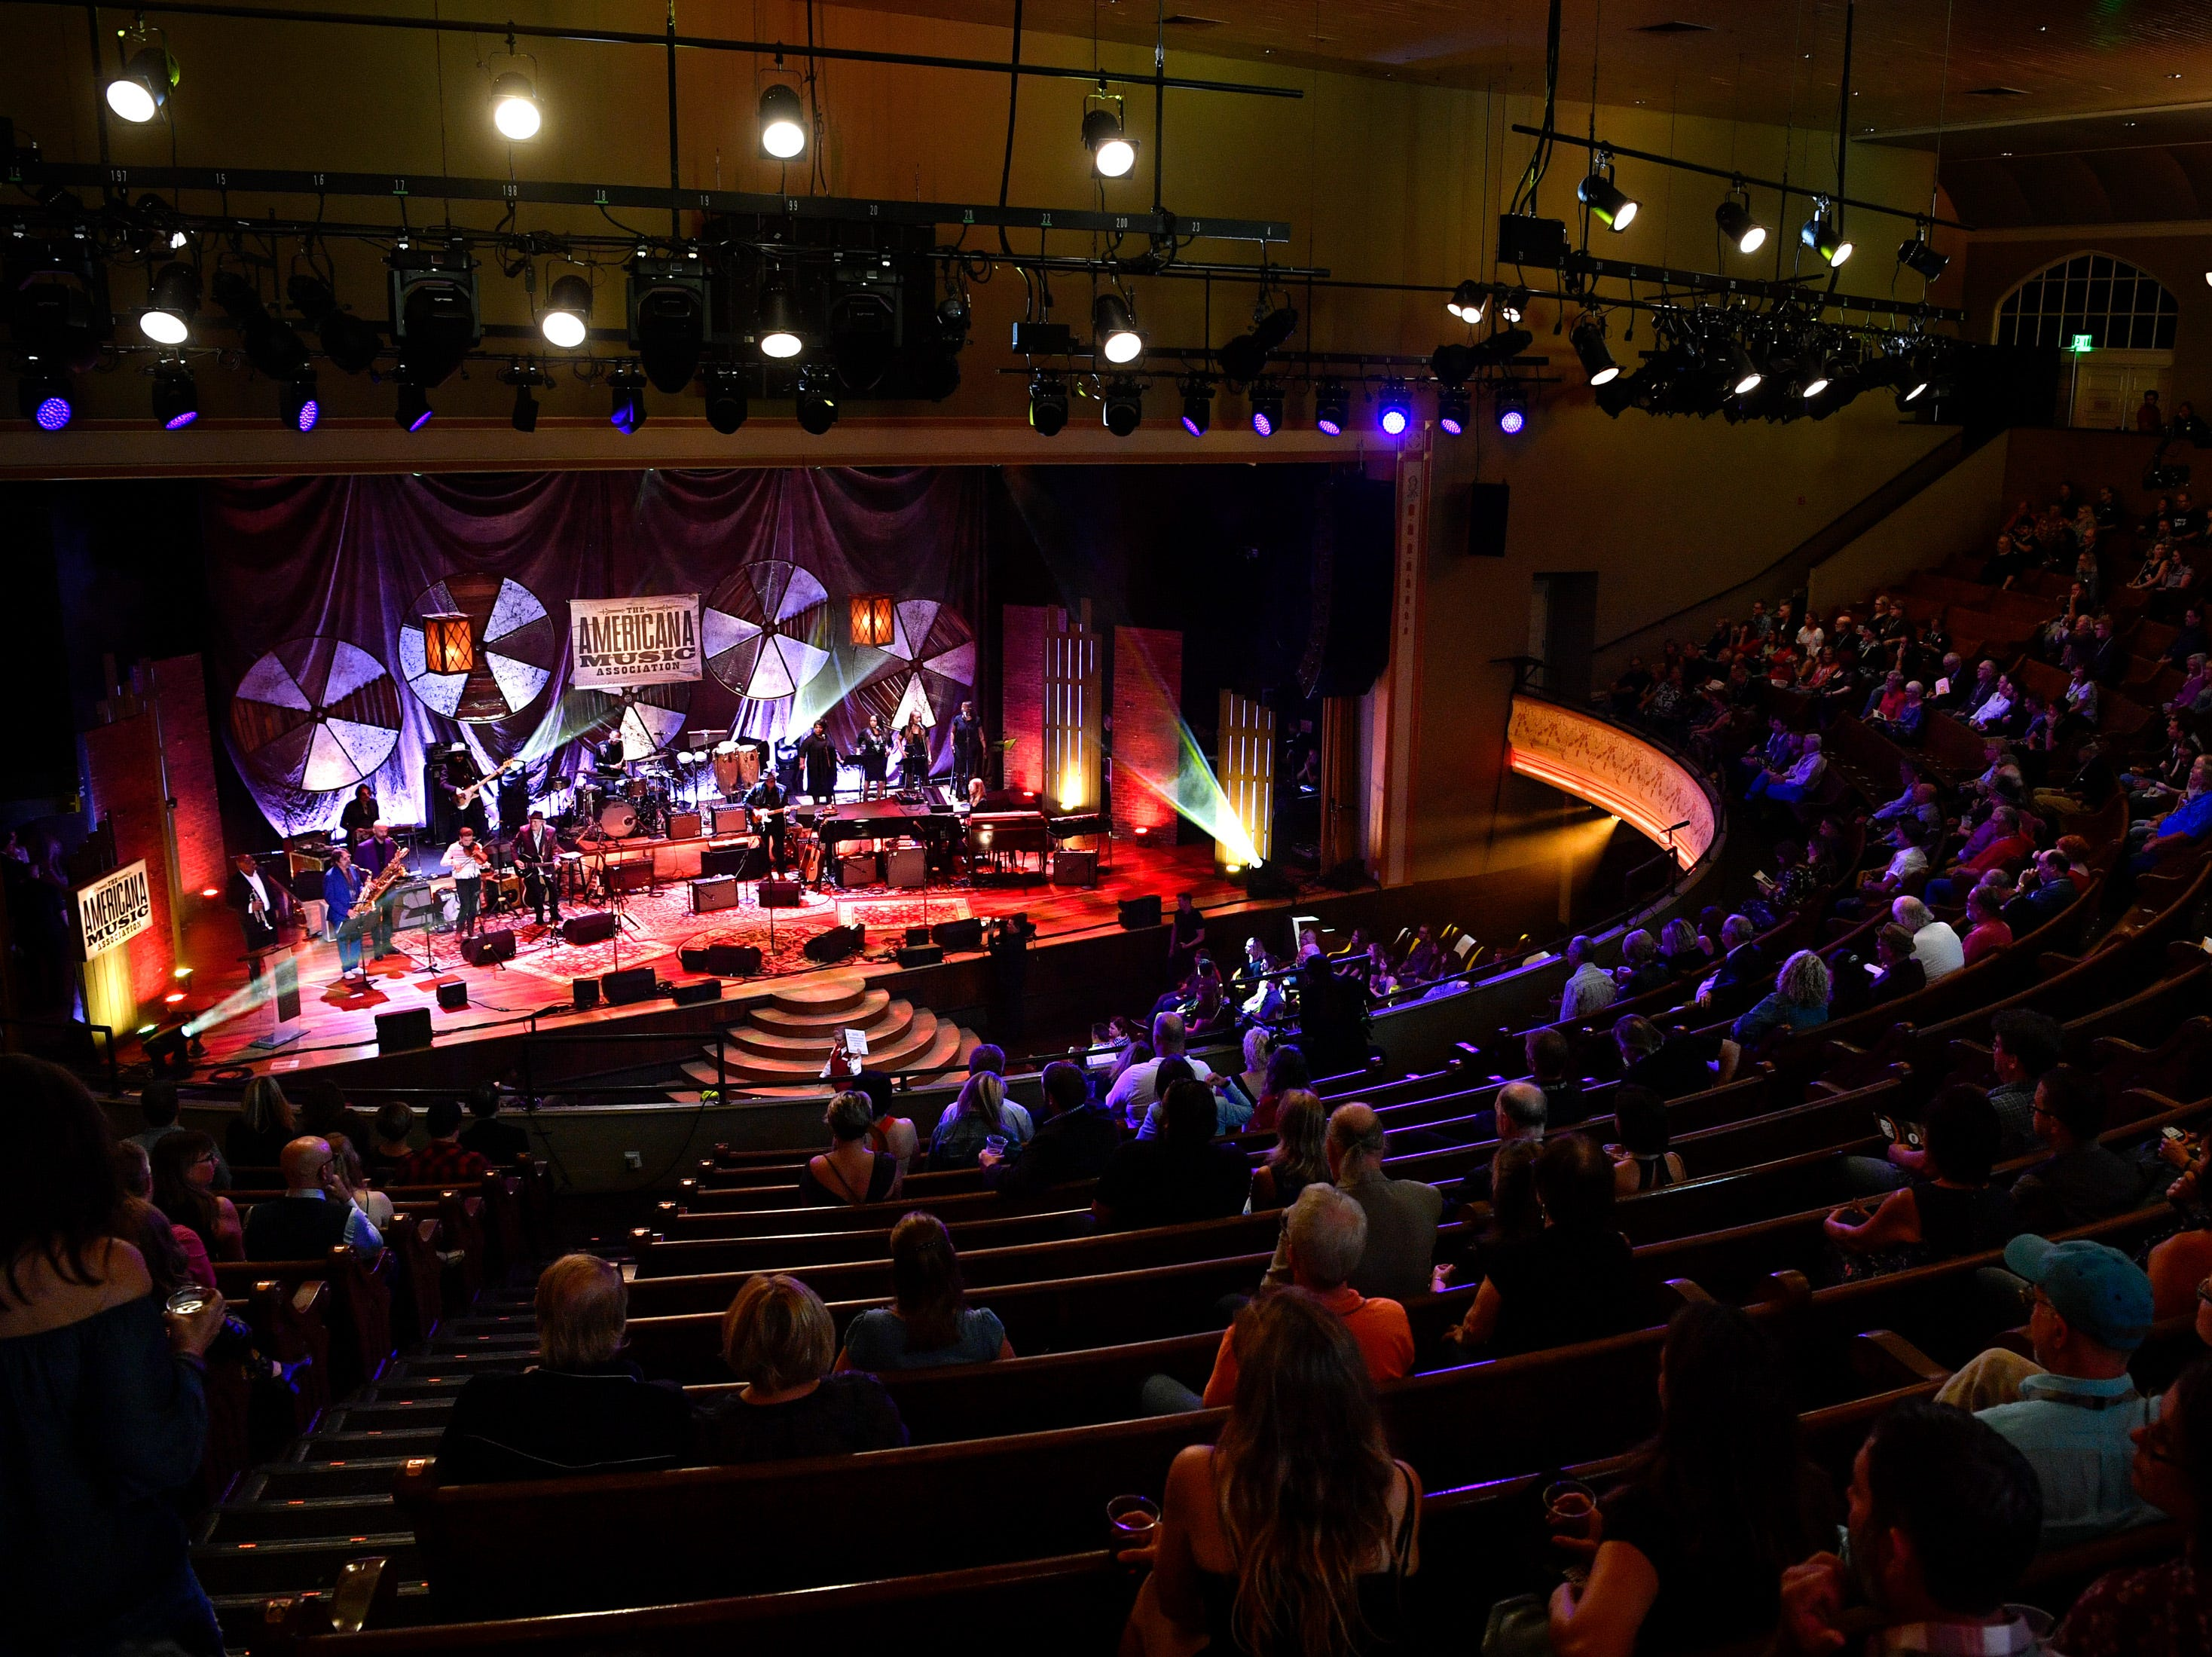 The 2018 Americana Honors and Awards show at the Ryman Auditorium in Nashville, Tenn., Wednesday, Sept. 12, 2018.